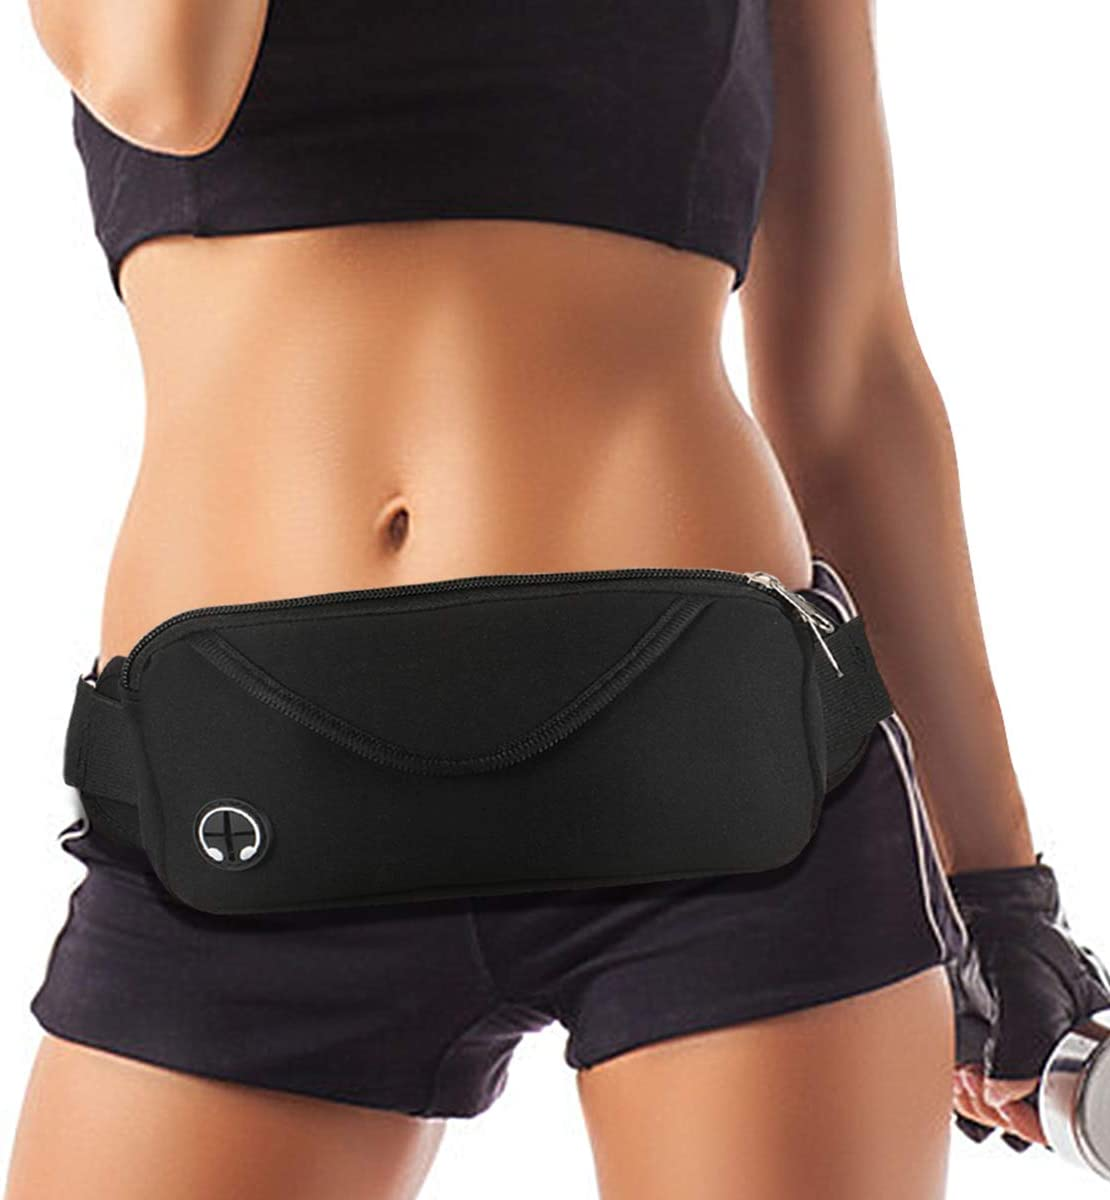 VASSN Running Belt Waist Pack Women Men Water Resistant Lightweight Running Pouch No Bounce Adjustable Sports Waist Bag for Fitness Workouts Cycling Travel Fanny Pack Carrying iPhone XR 8 7 6 6S